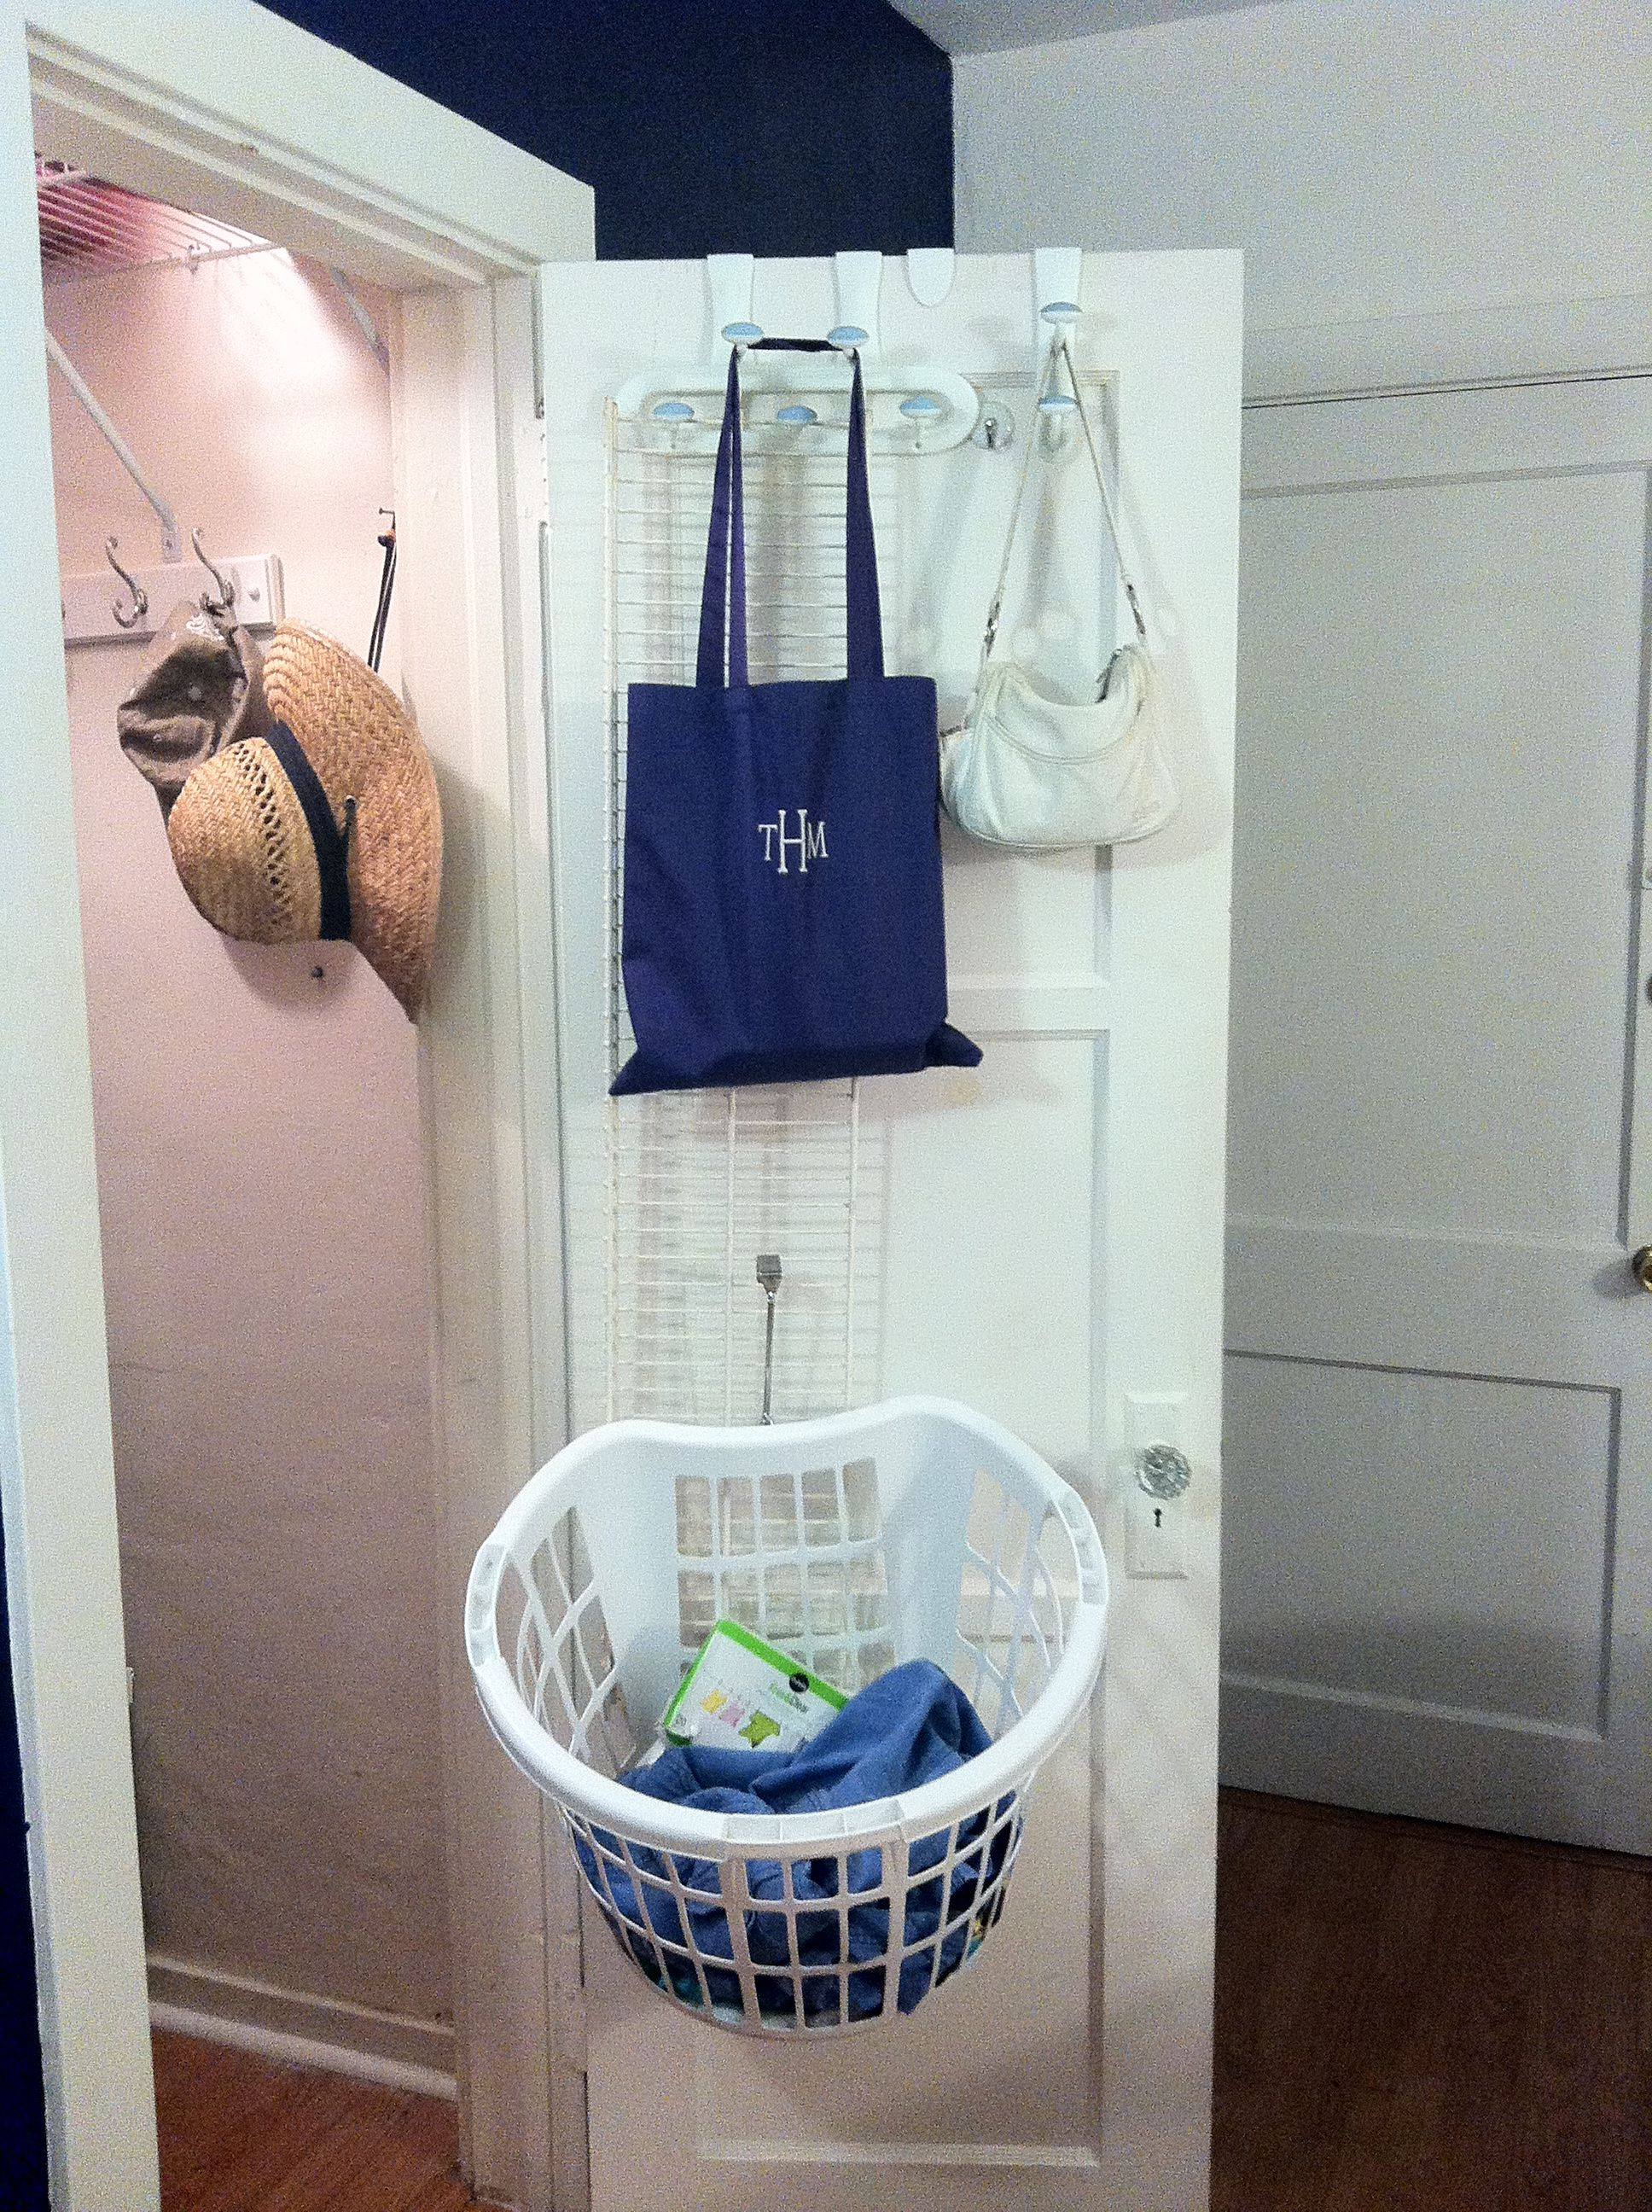 Laundry Basket Holder Use An Unwanted Closet Shelf And Your Over The Door Hooks To